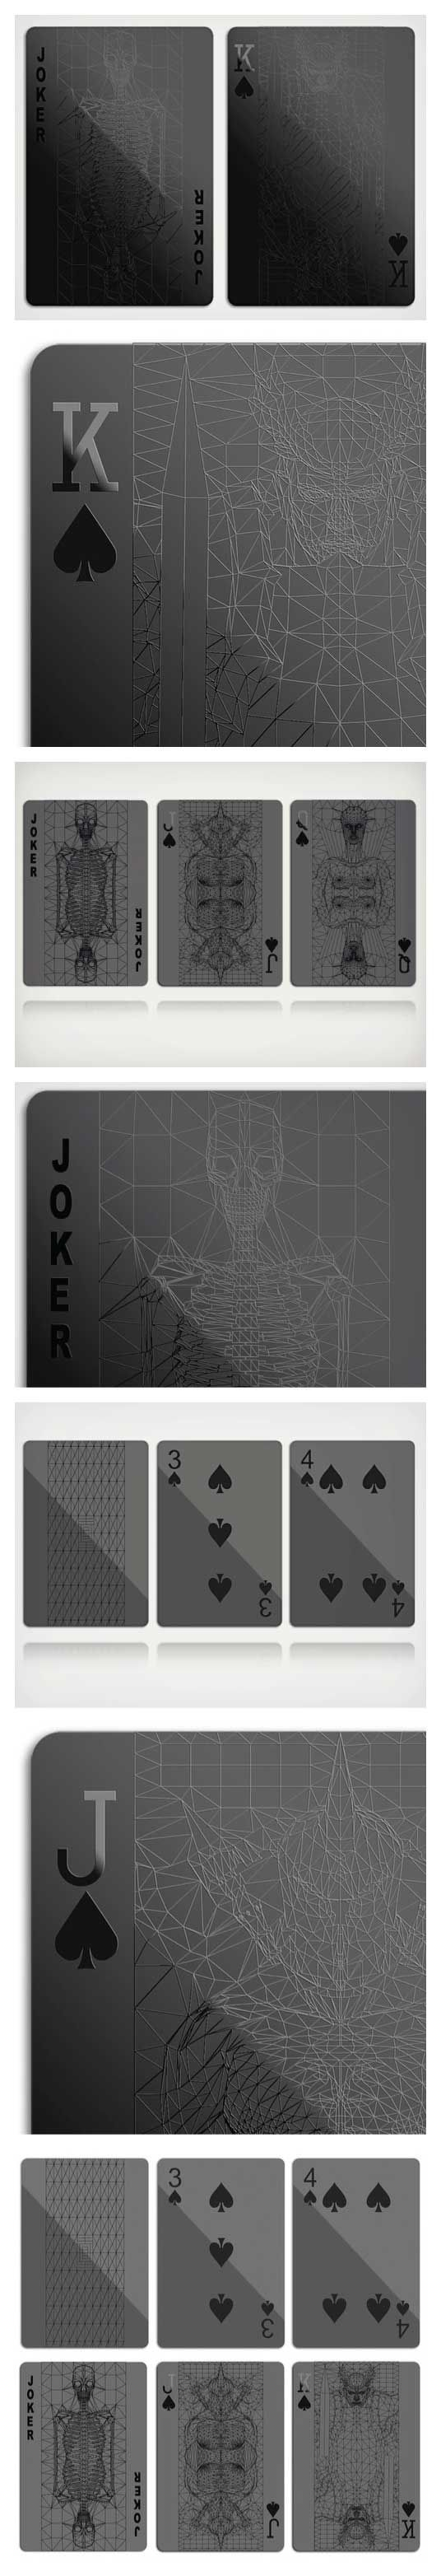 Playing cards are the new Kickstarter pens. A new deck comes out every other week that we end up drooling over (which is bad cause now all the edges are getting mushy). Our latest find is this set of Black Playing Cards which happen to please our eyeballs mightily  Following the commandment set forth by the likes of Jay-Z, this deck sports all black everything. The black on black print makes for an aesthetically pleasing and slightly demonic feel (especially considering the face card…